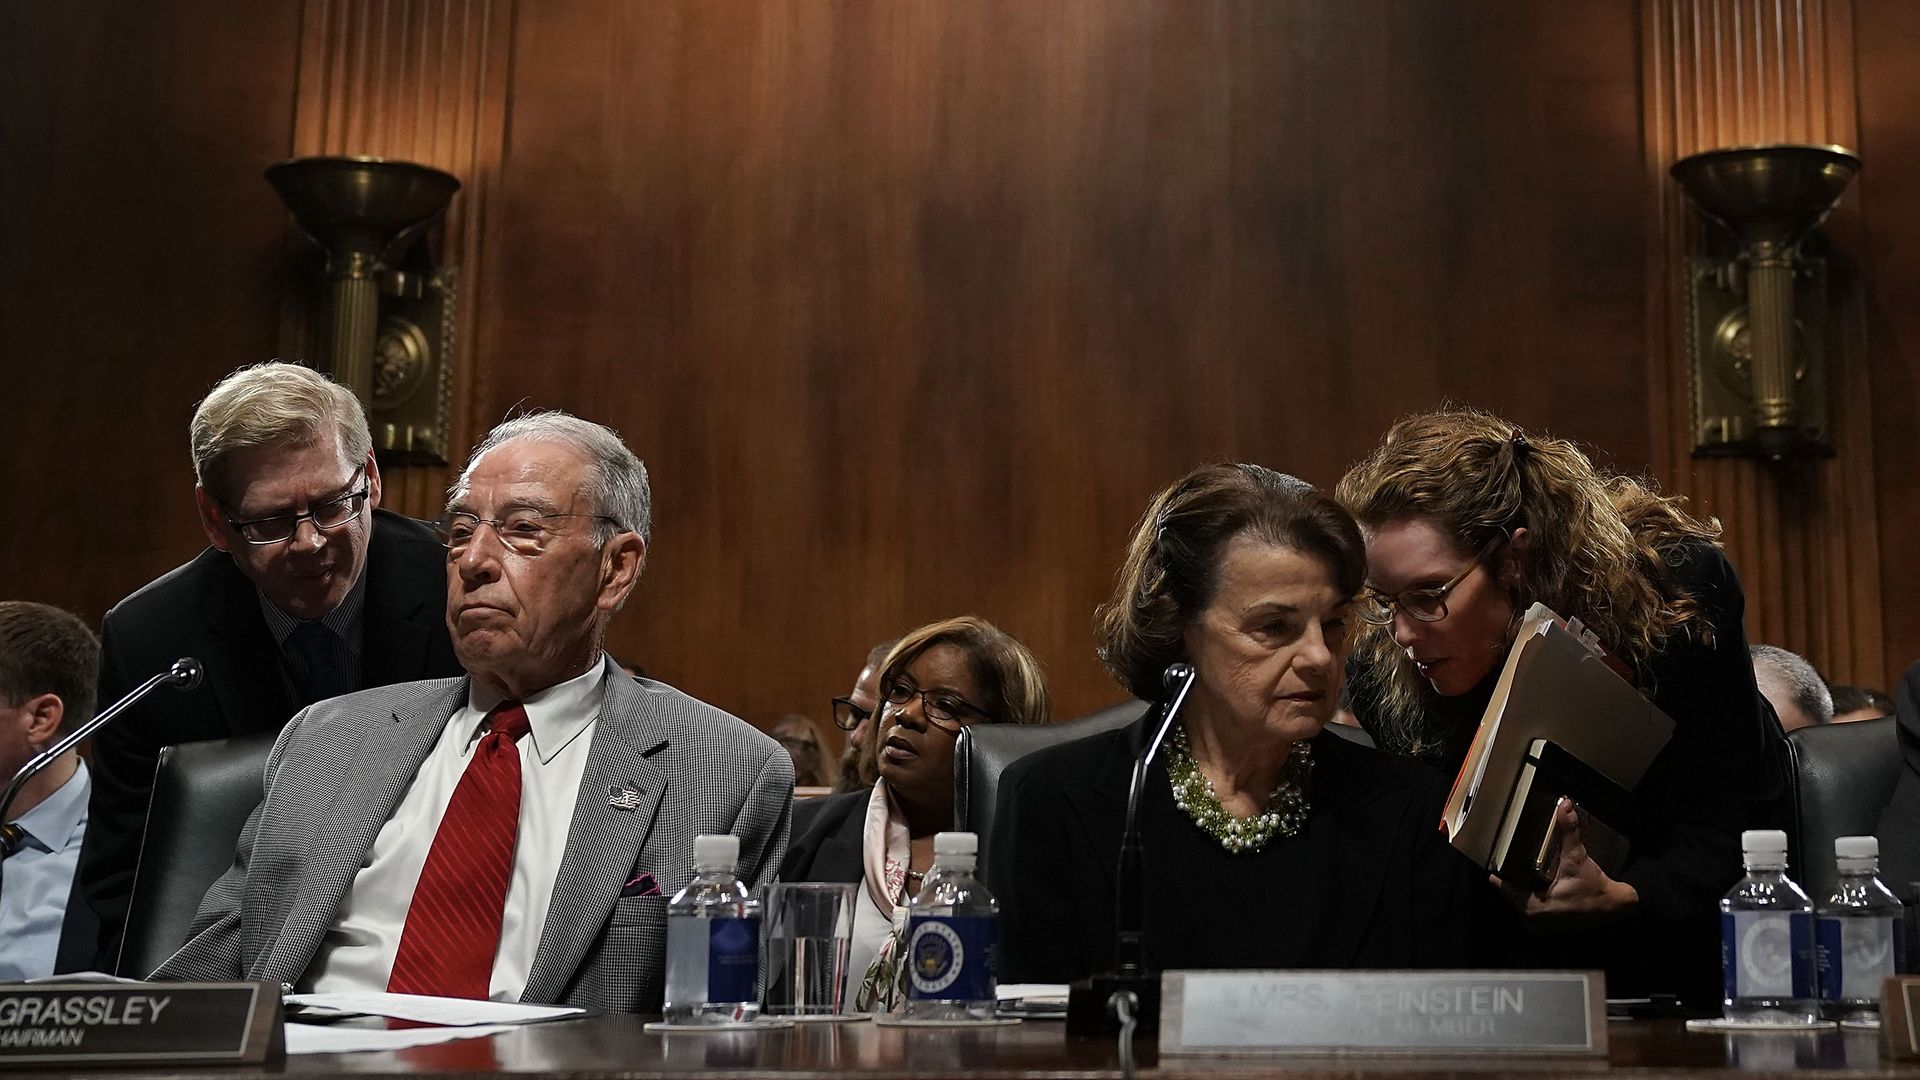 Chuck Grassley and Dianne Feinstein talking to their aides in a briefing room.